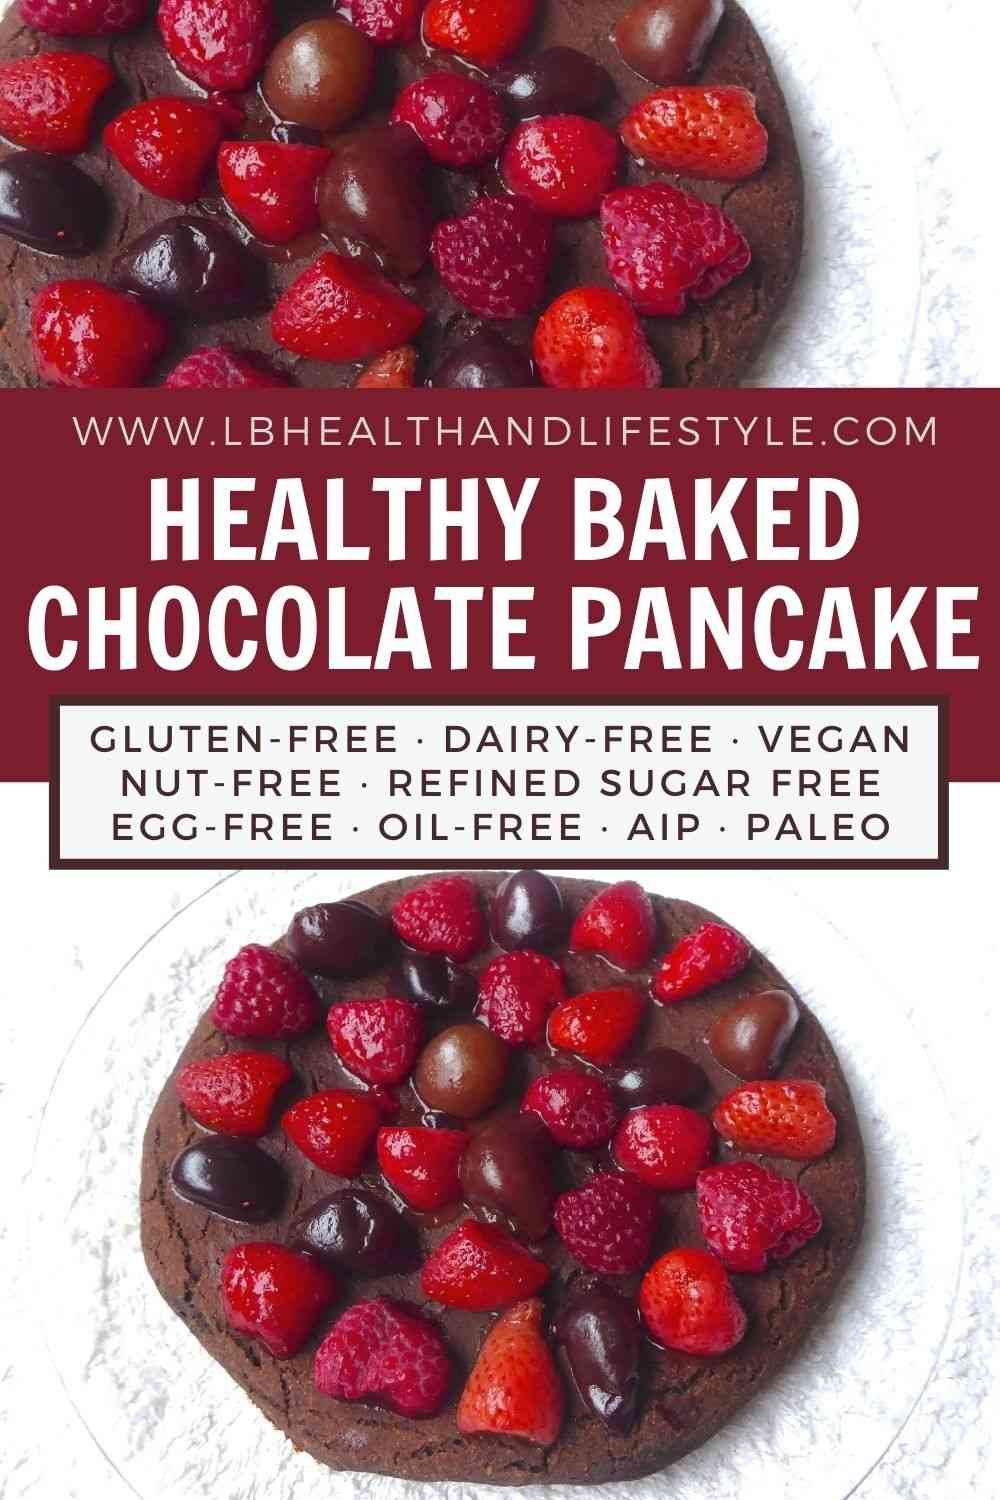 Oven Baked Pancake – Healthy Chocolate Recipe